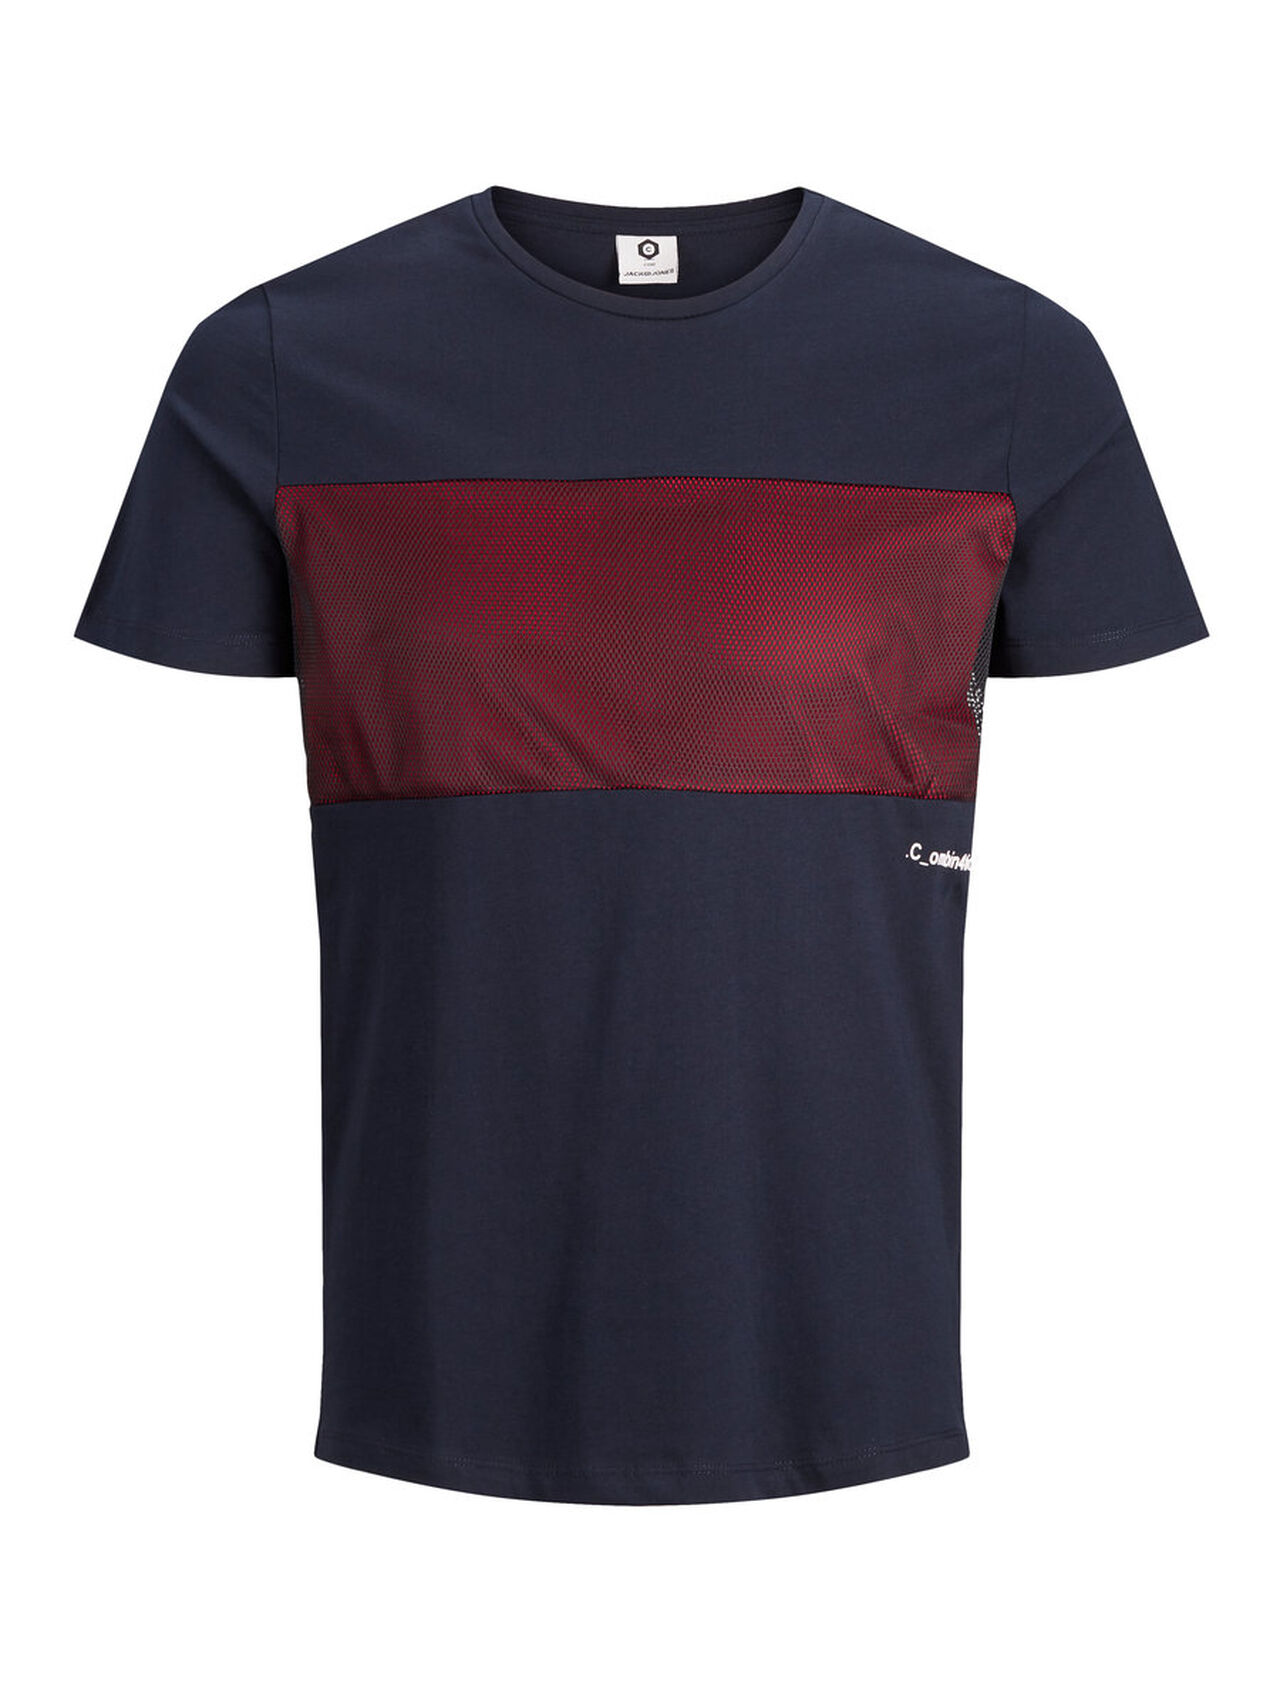 JACK & JONES Printed Slim Fit T-shirt Men Blue